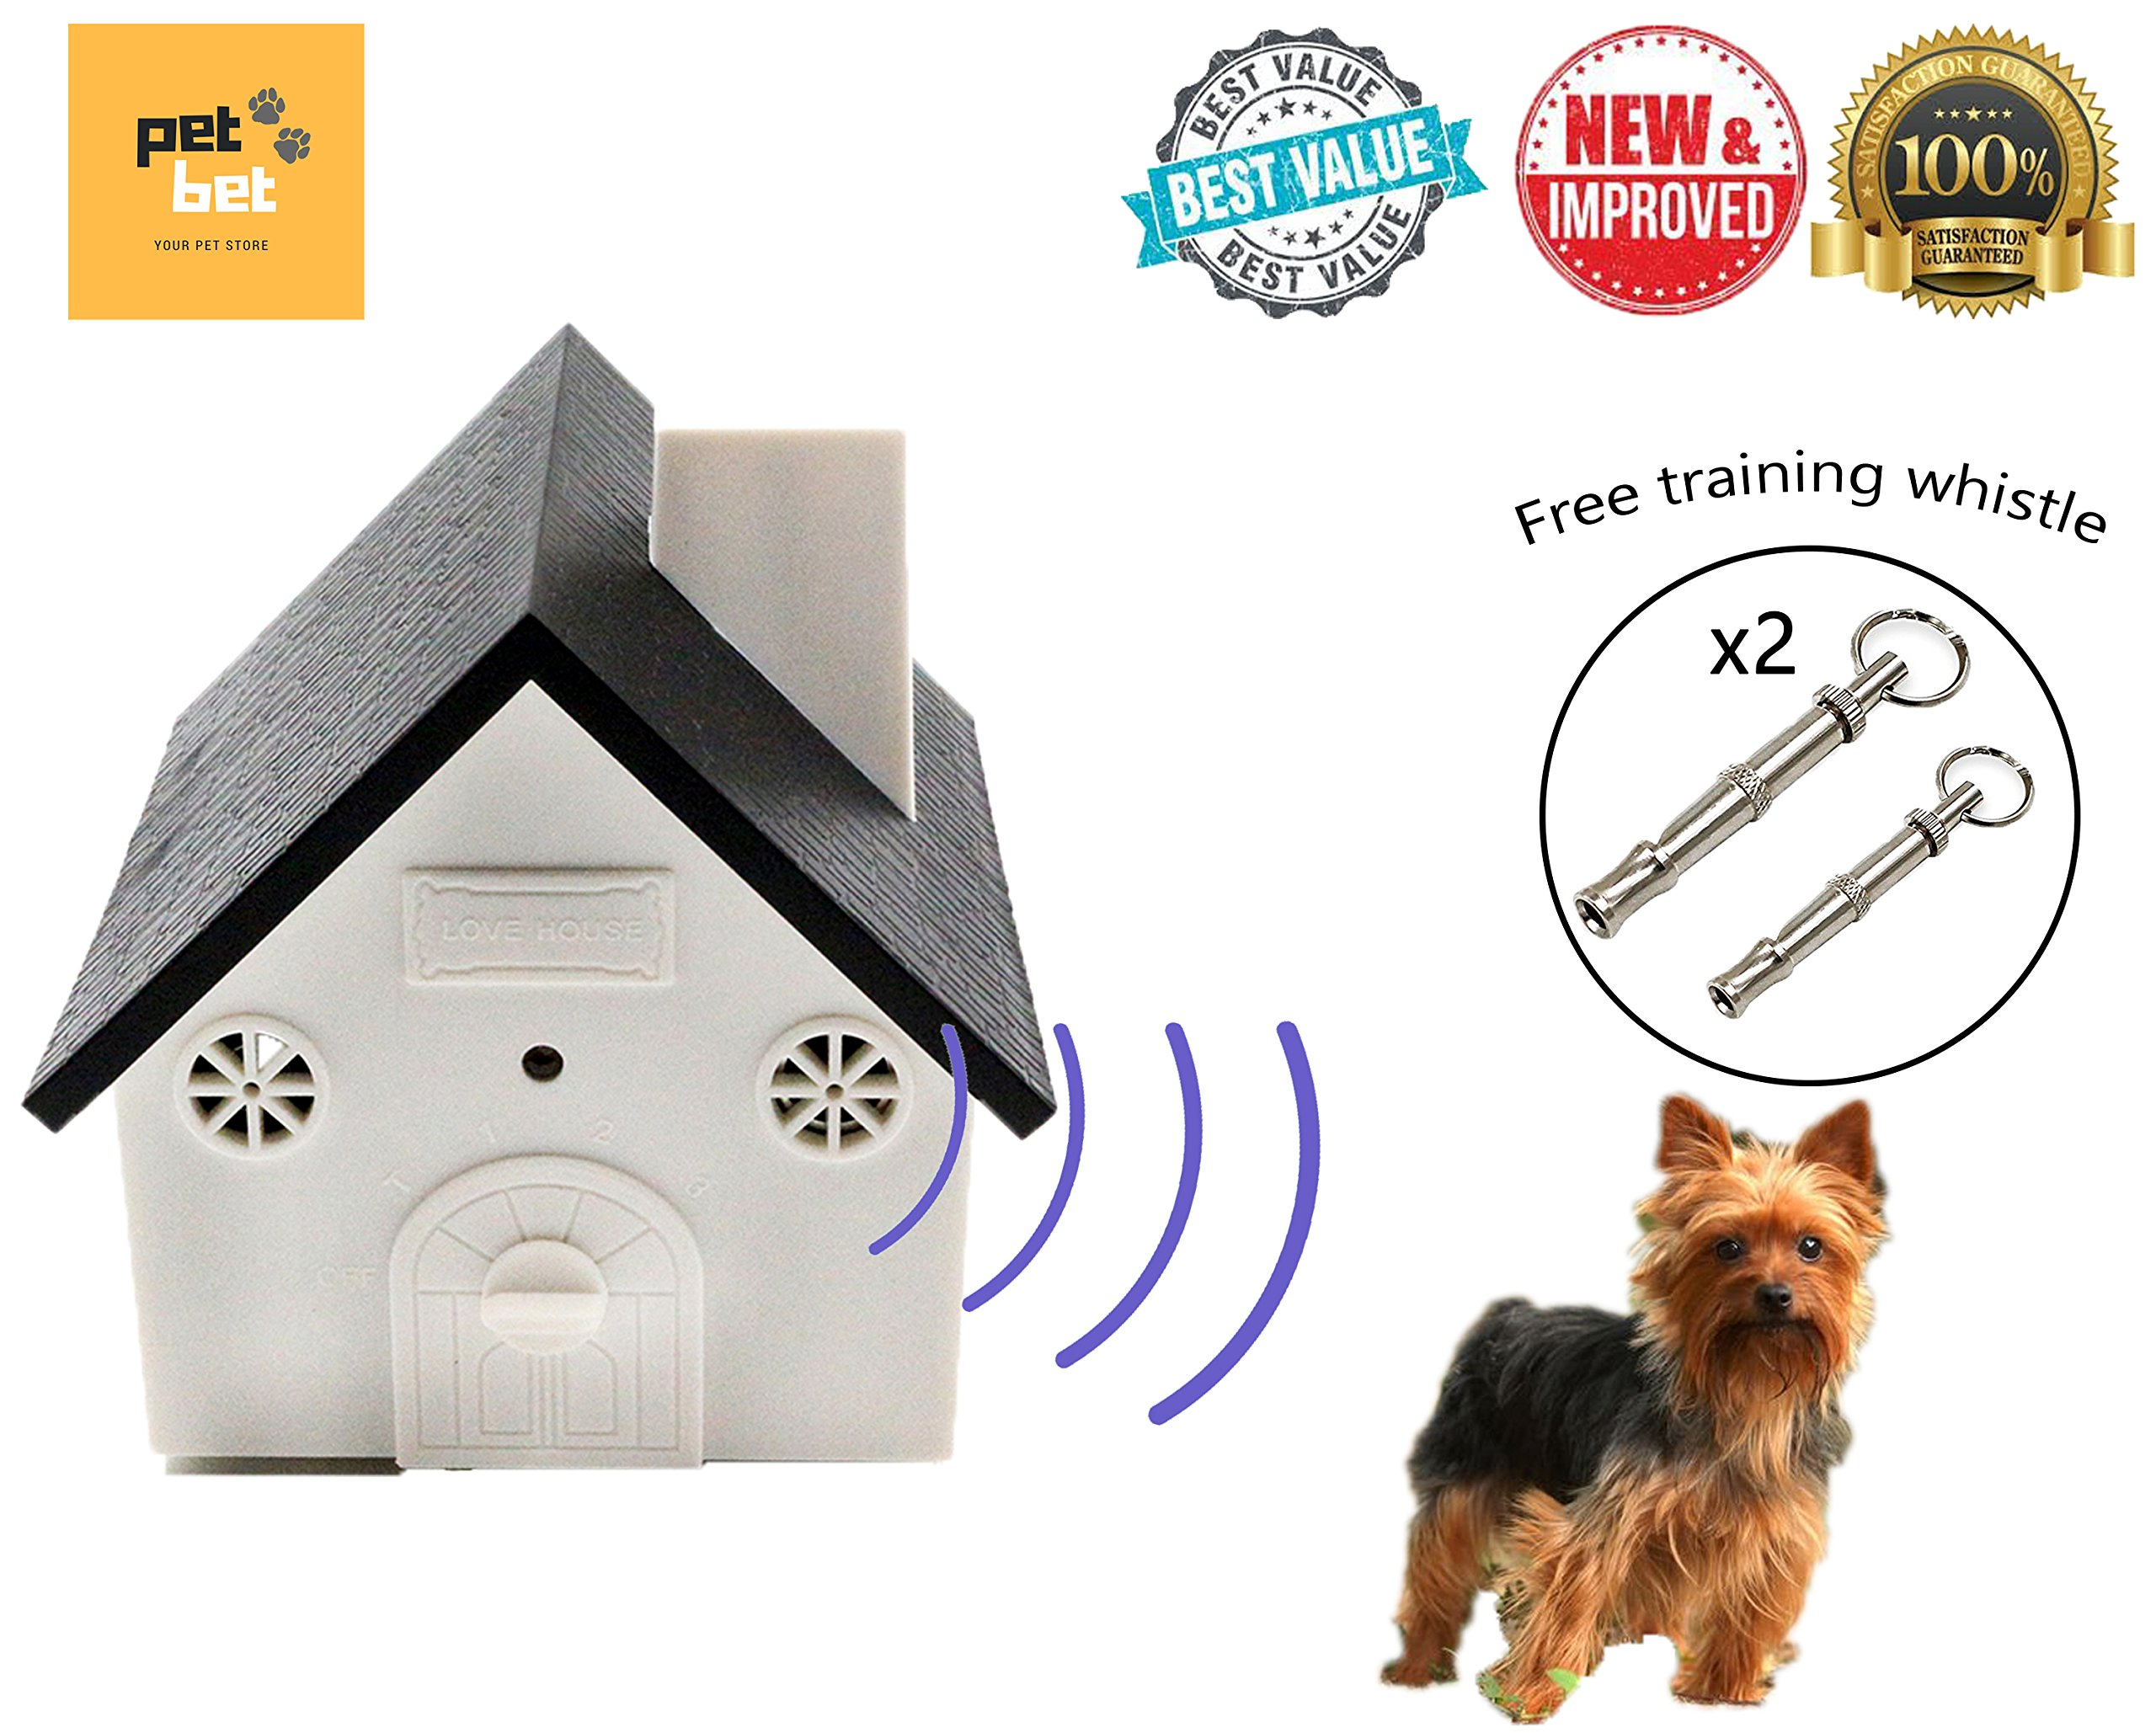 PetBet Ultrasonic Anti-Barking Dog Bark Controller Device Outdoor/Indoor Use - No Harm, Safe to Dog or Other Pets, Sonic Muzzle Bark Deterrent Stop Barking, No Collar, Easy Hanging